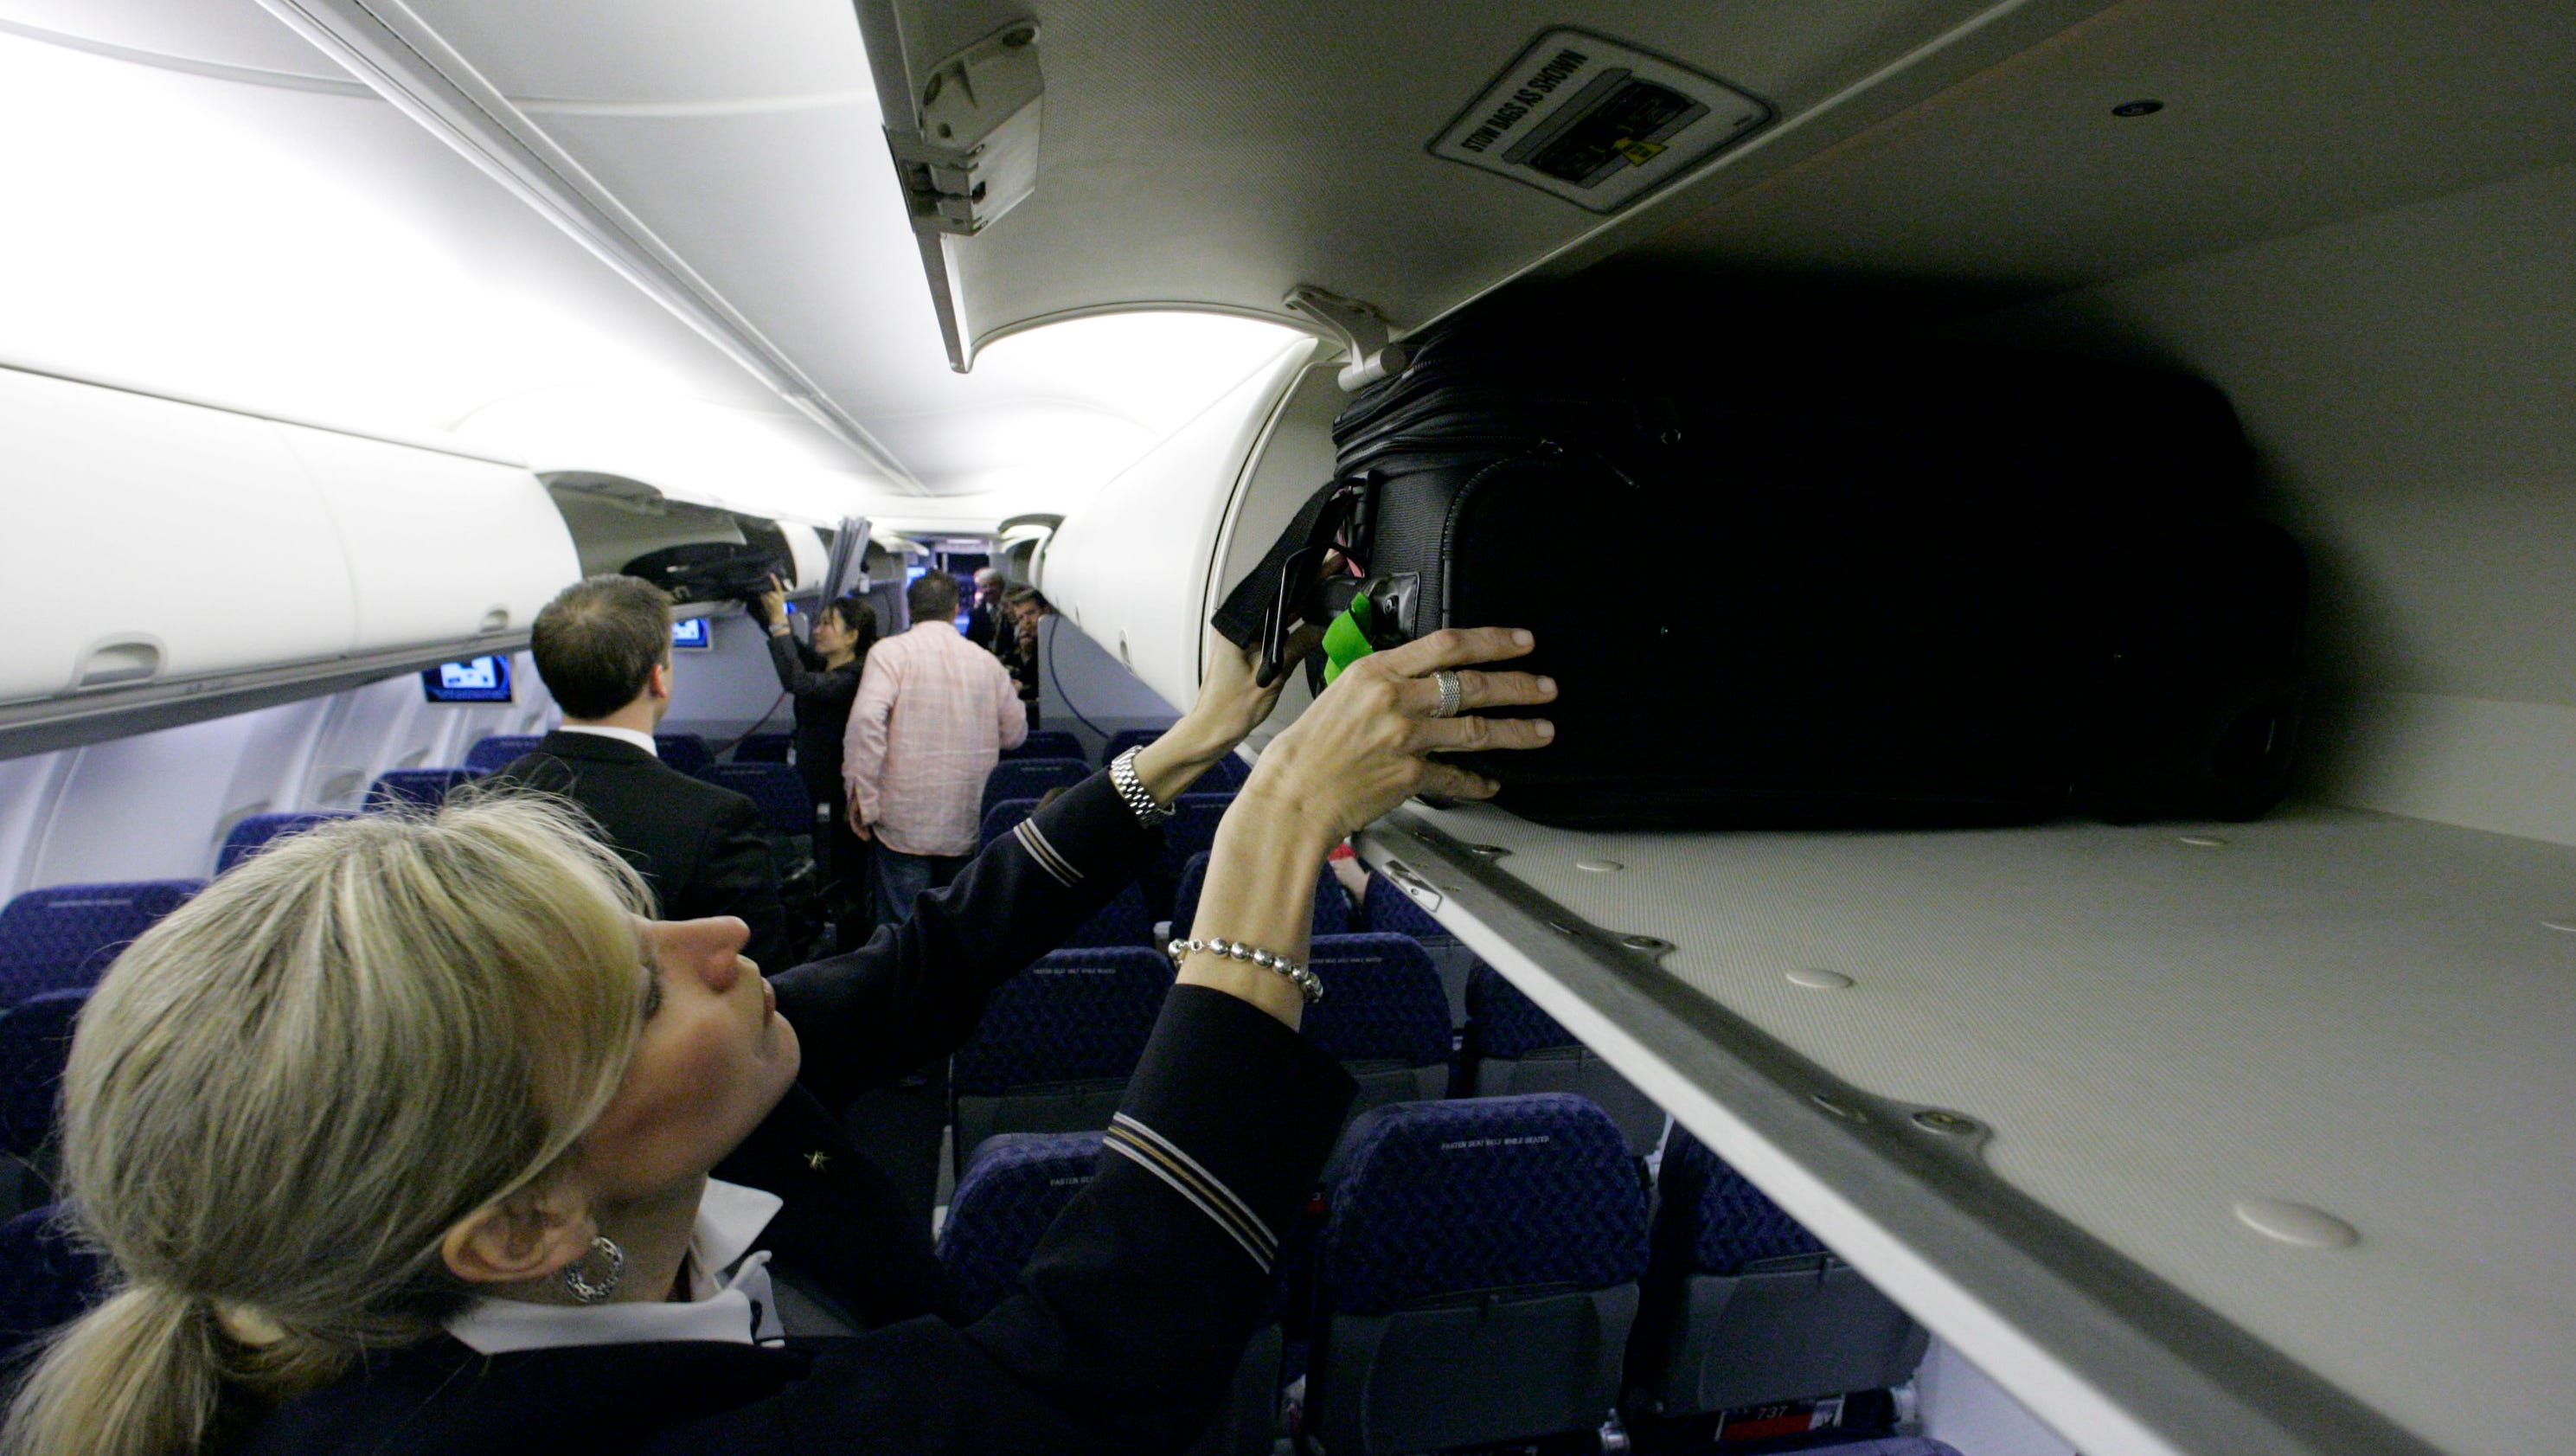 Airline Group Calls For Smaller Carry On Bags To Free Up